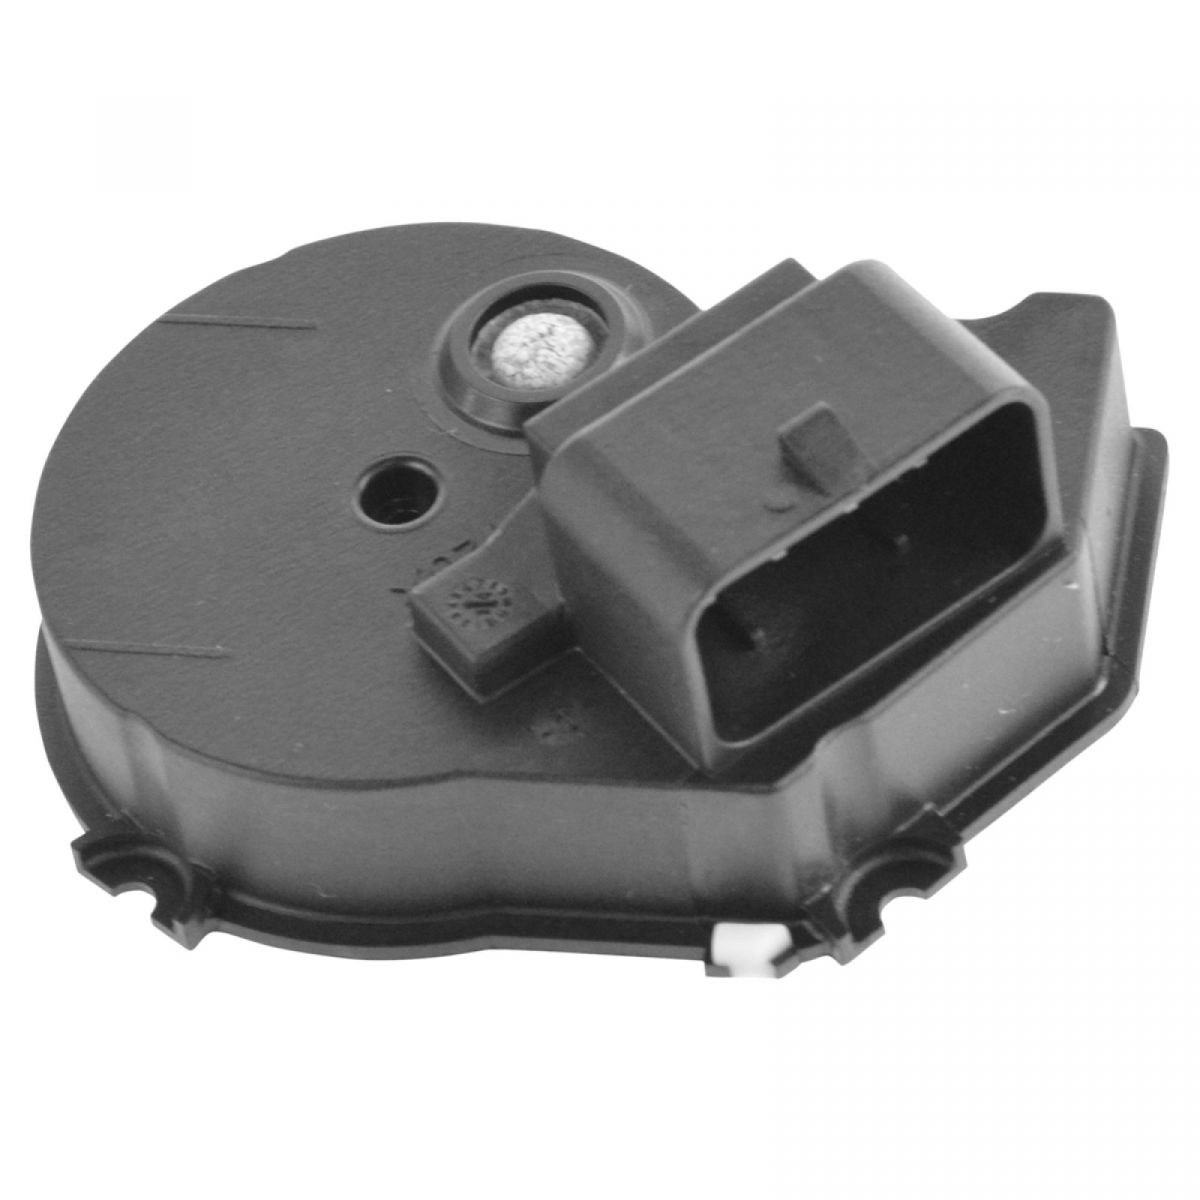 Oem windshield wiper motor pulse board with cover for for Windshield wiper motor price